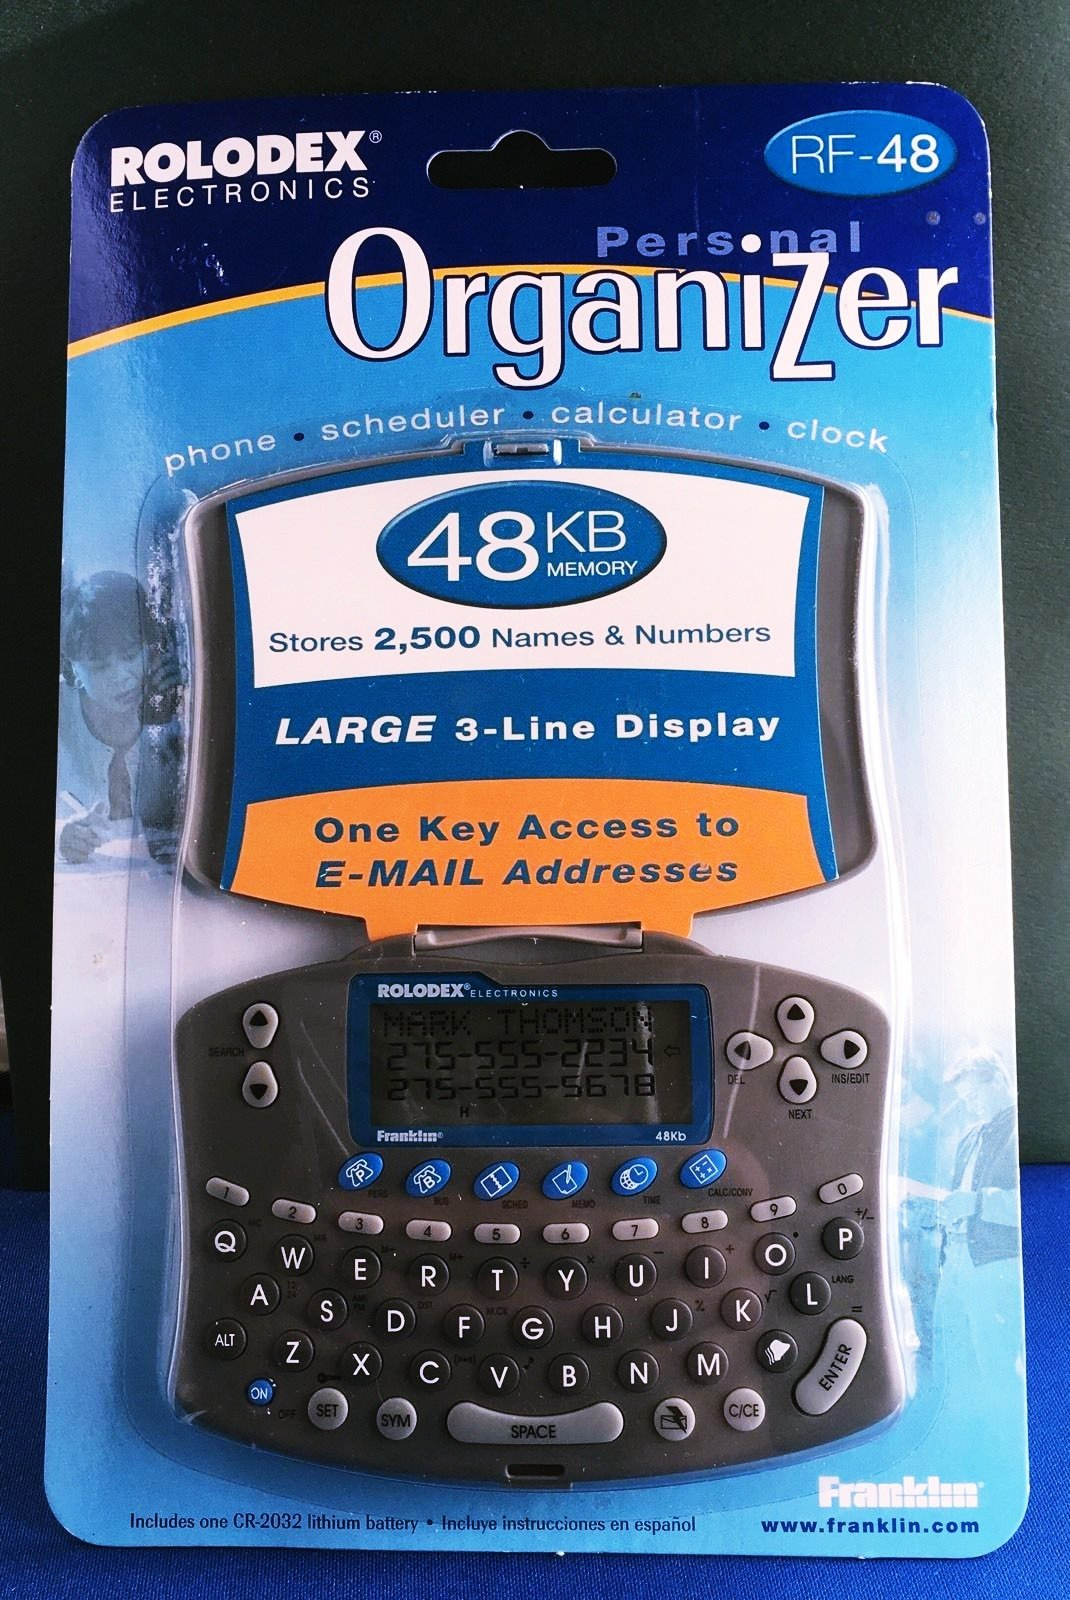 Franklin Rolodex Personal Organizer RF-48 New In Package Hard to find! Don't let it get away!! by FR (Image #2)